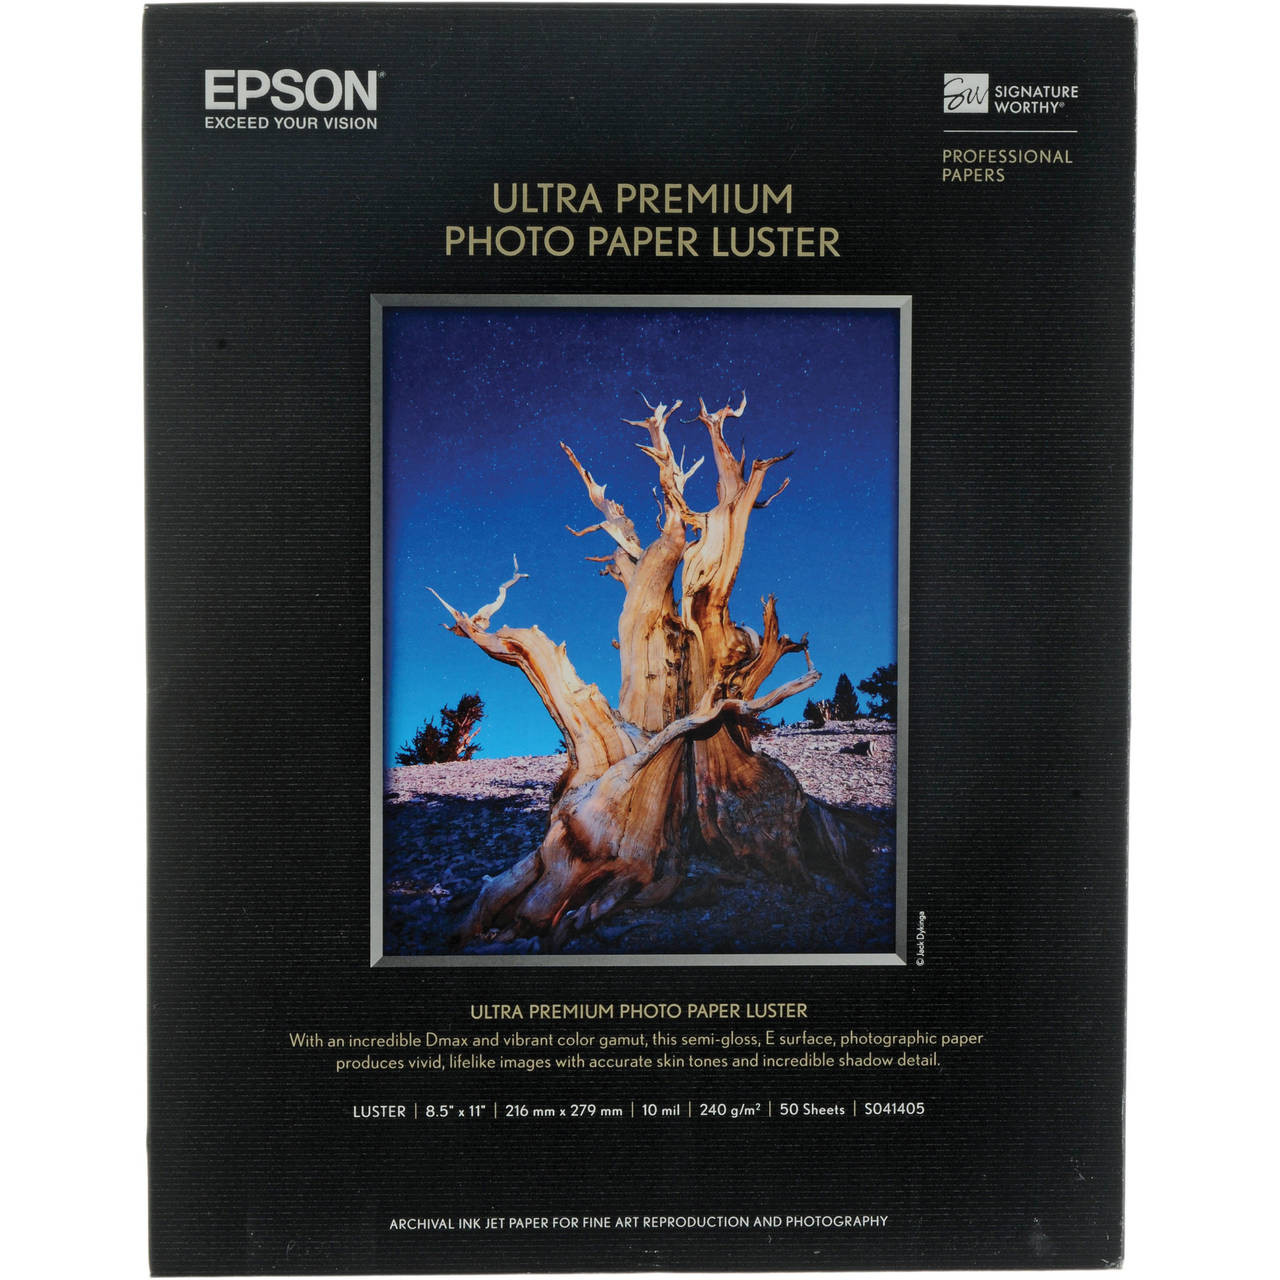 Epson Ultra Premium Photo Paper Luster 85 X 11 50 Sheets